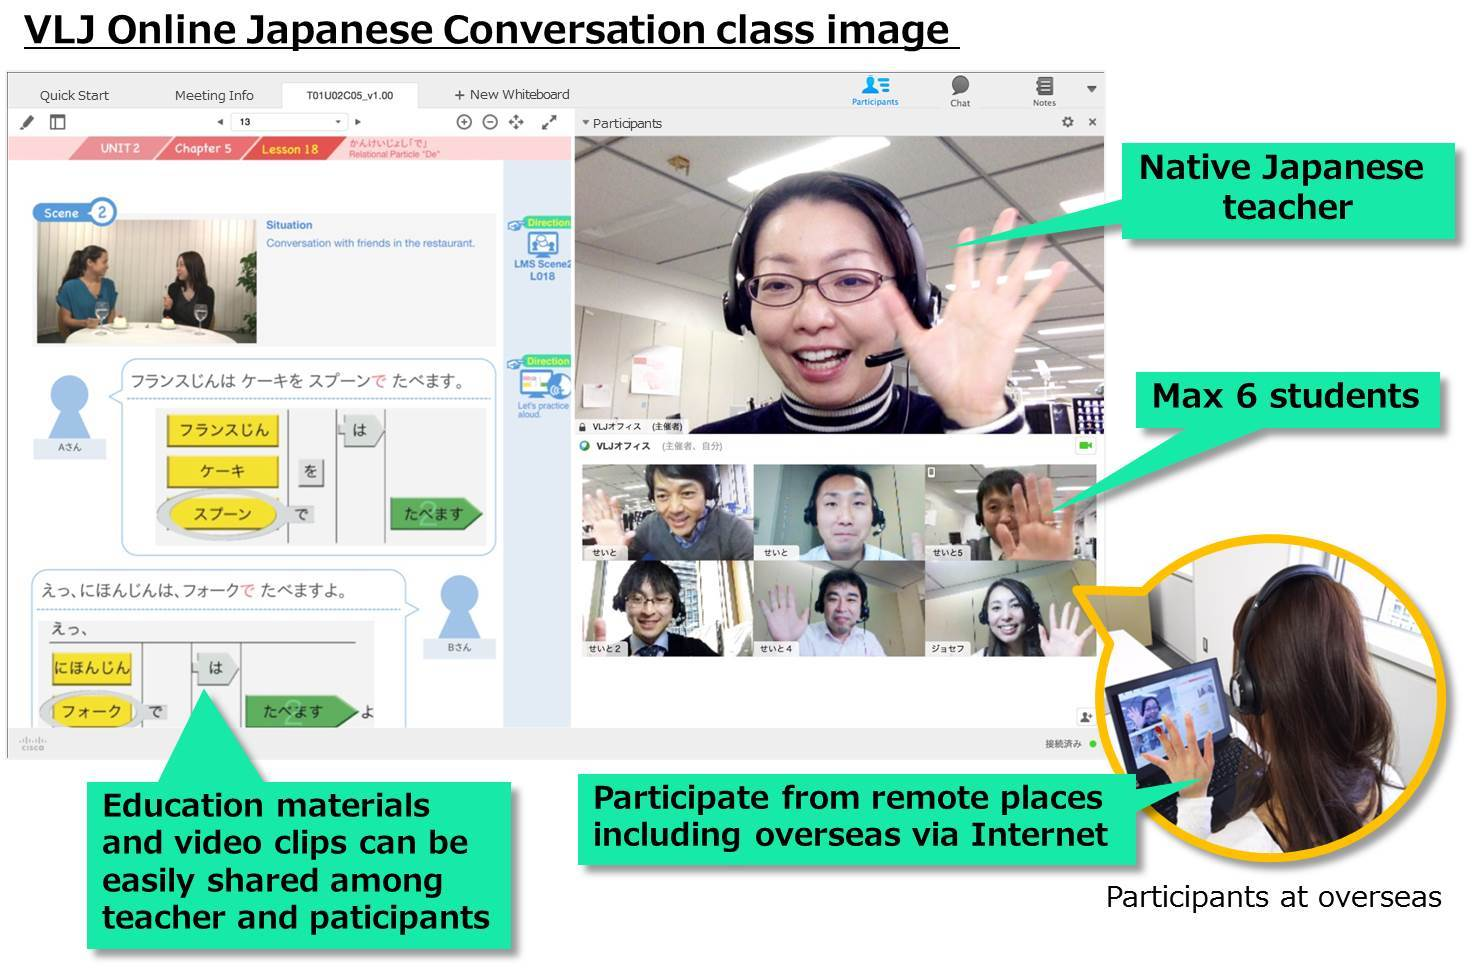 VLJ Online Japanese Conversation class image (Graphic: Business Wire)